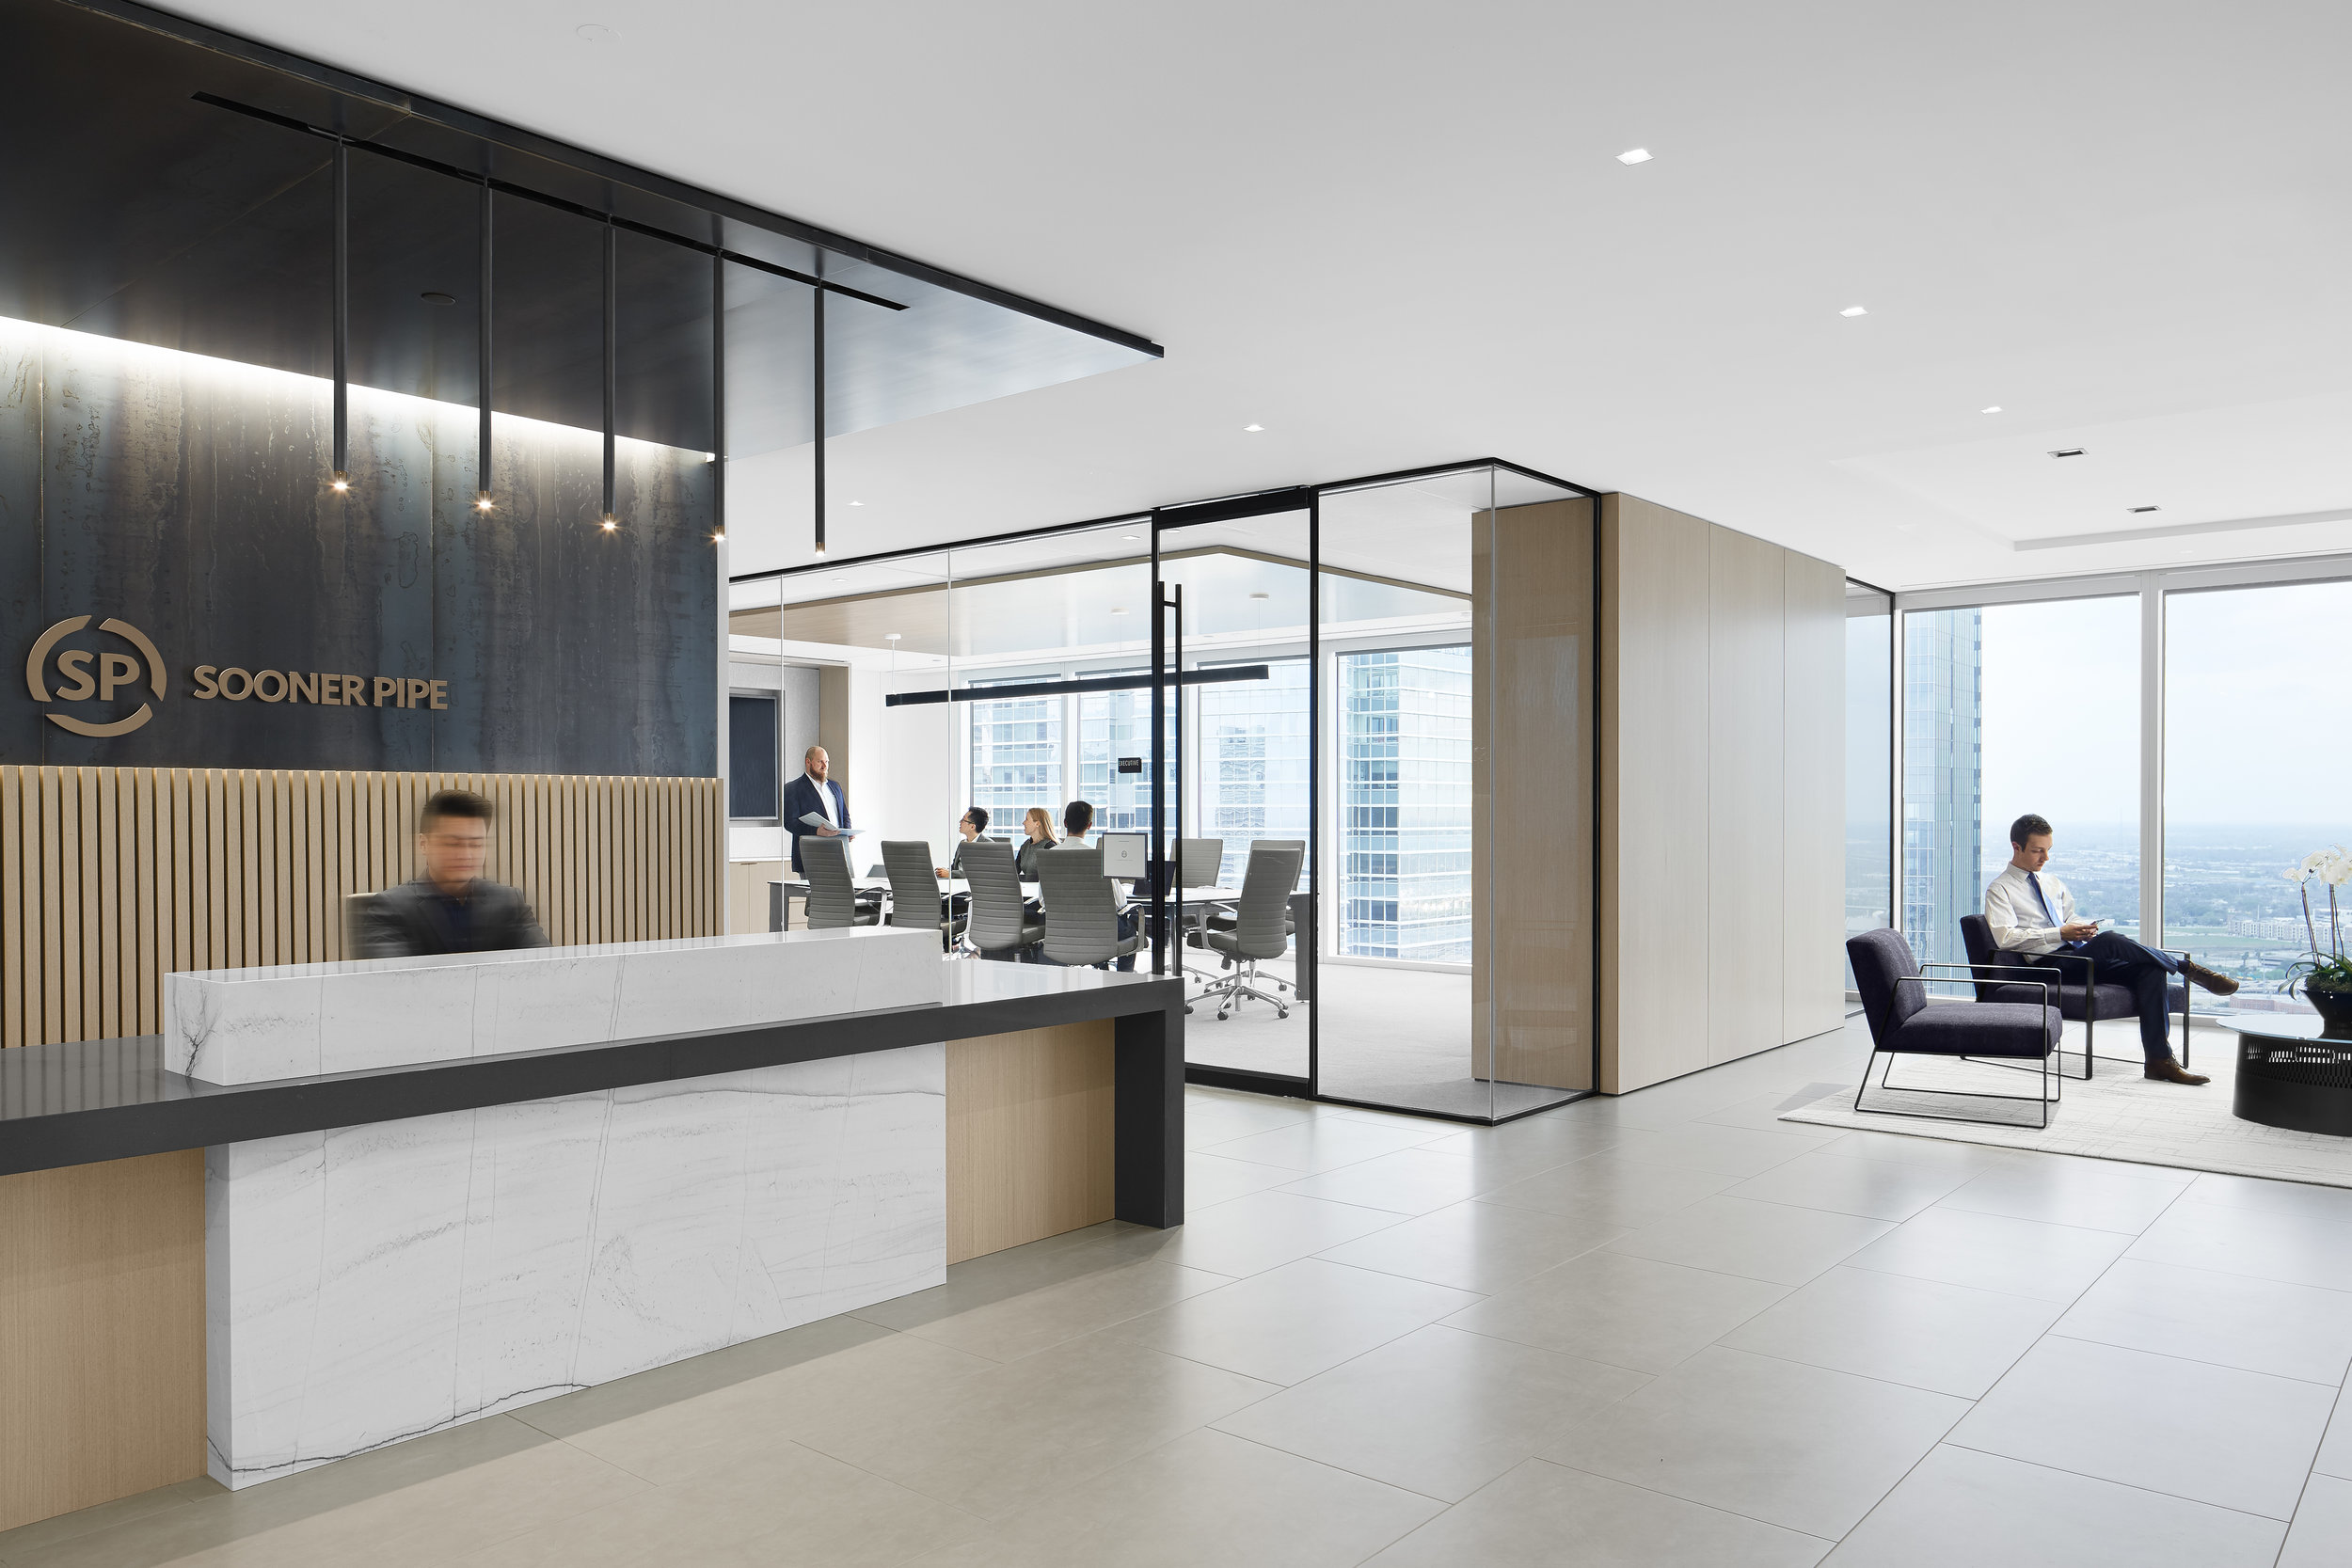 1001-Sooner Pipe Houston by Kirksey Architecture Photos by Jonathan Dean-Reception 2 with People-Edit.jpg